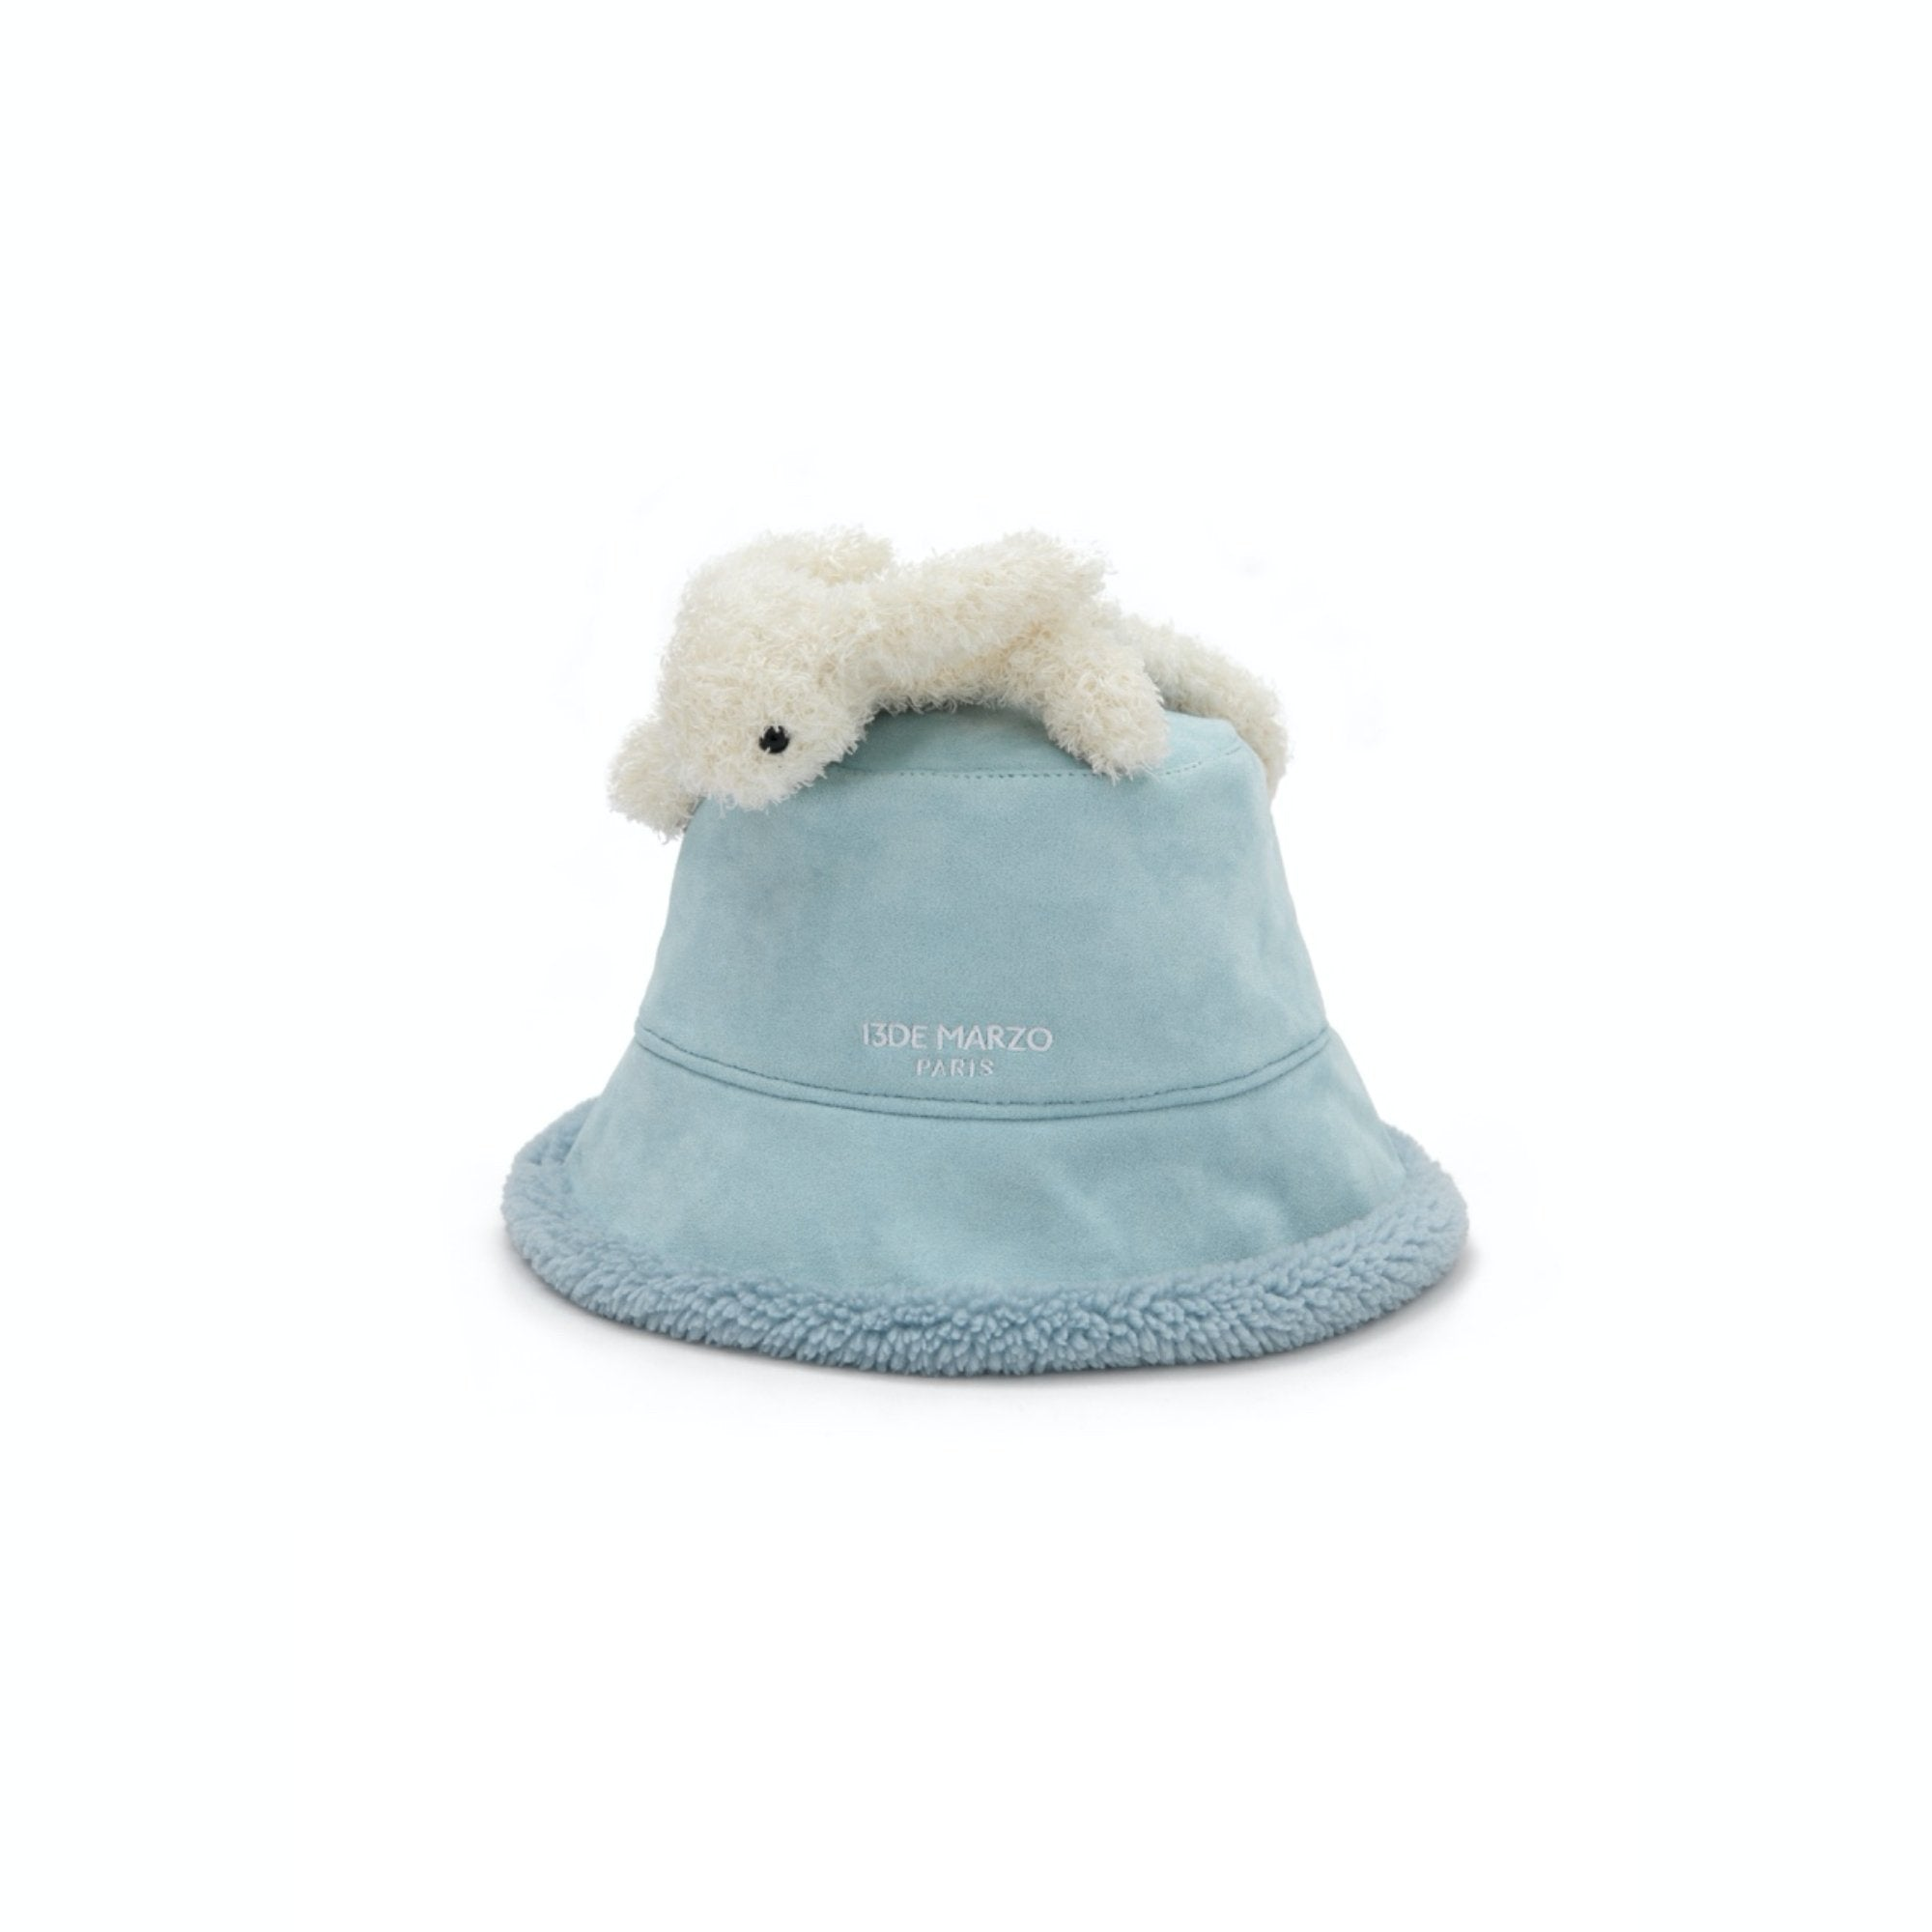 13 DE MARZO Lazy Teddy Bear Both-side Bucket Hat Blue | MADA IN CHINA